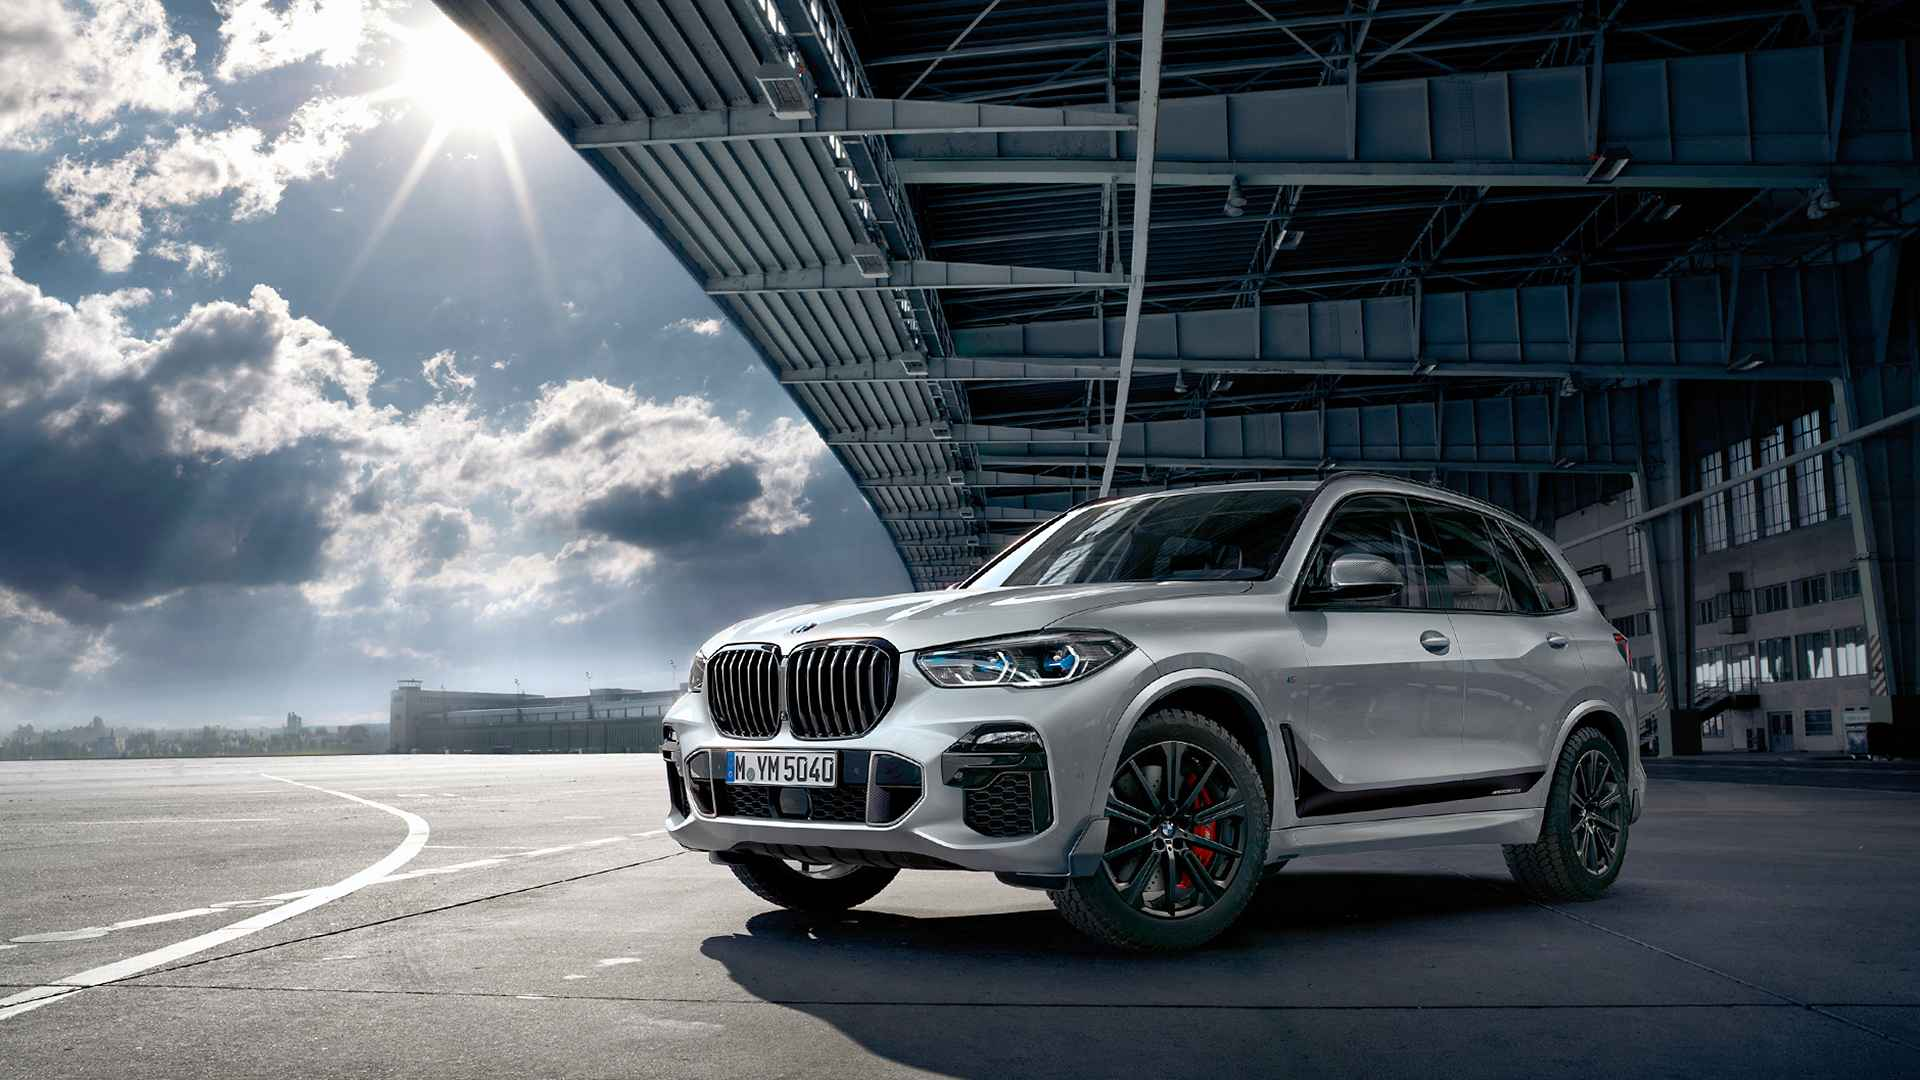 2018 - [BMW] X5 IV [G05] - Page 9 2018-bmw-x5-m-performance-parts